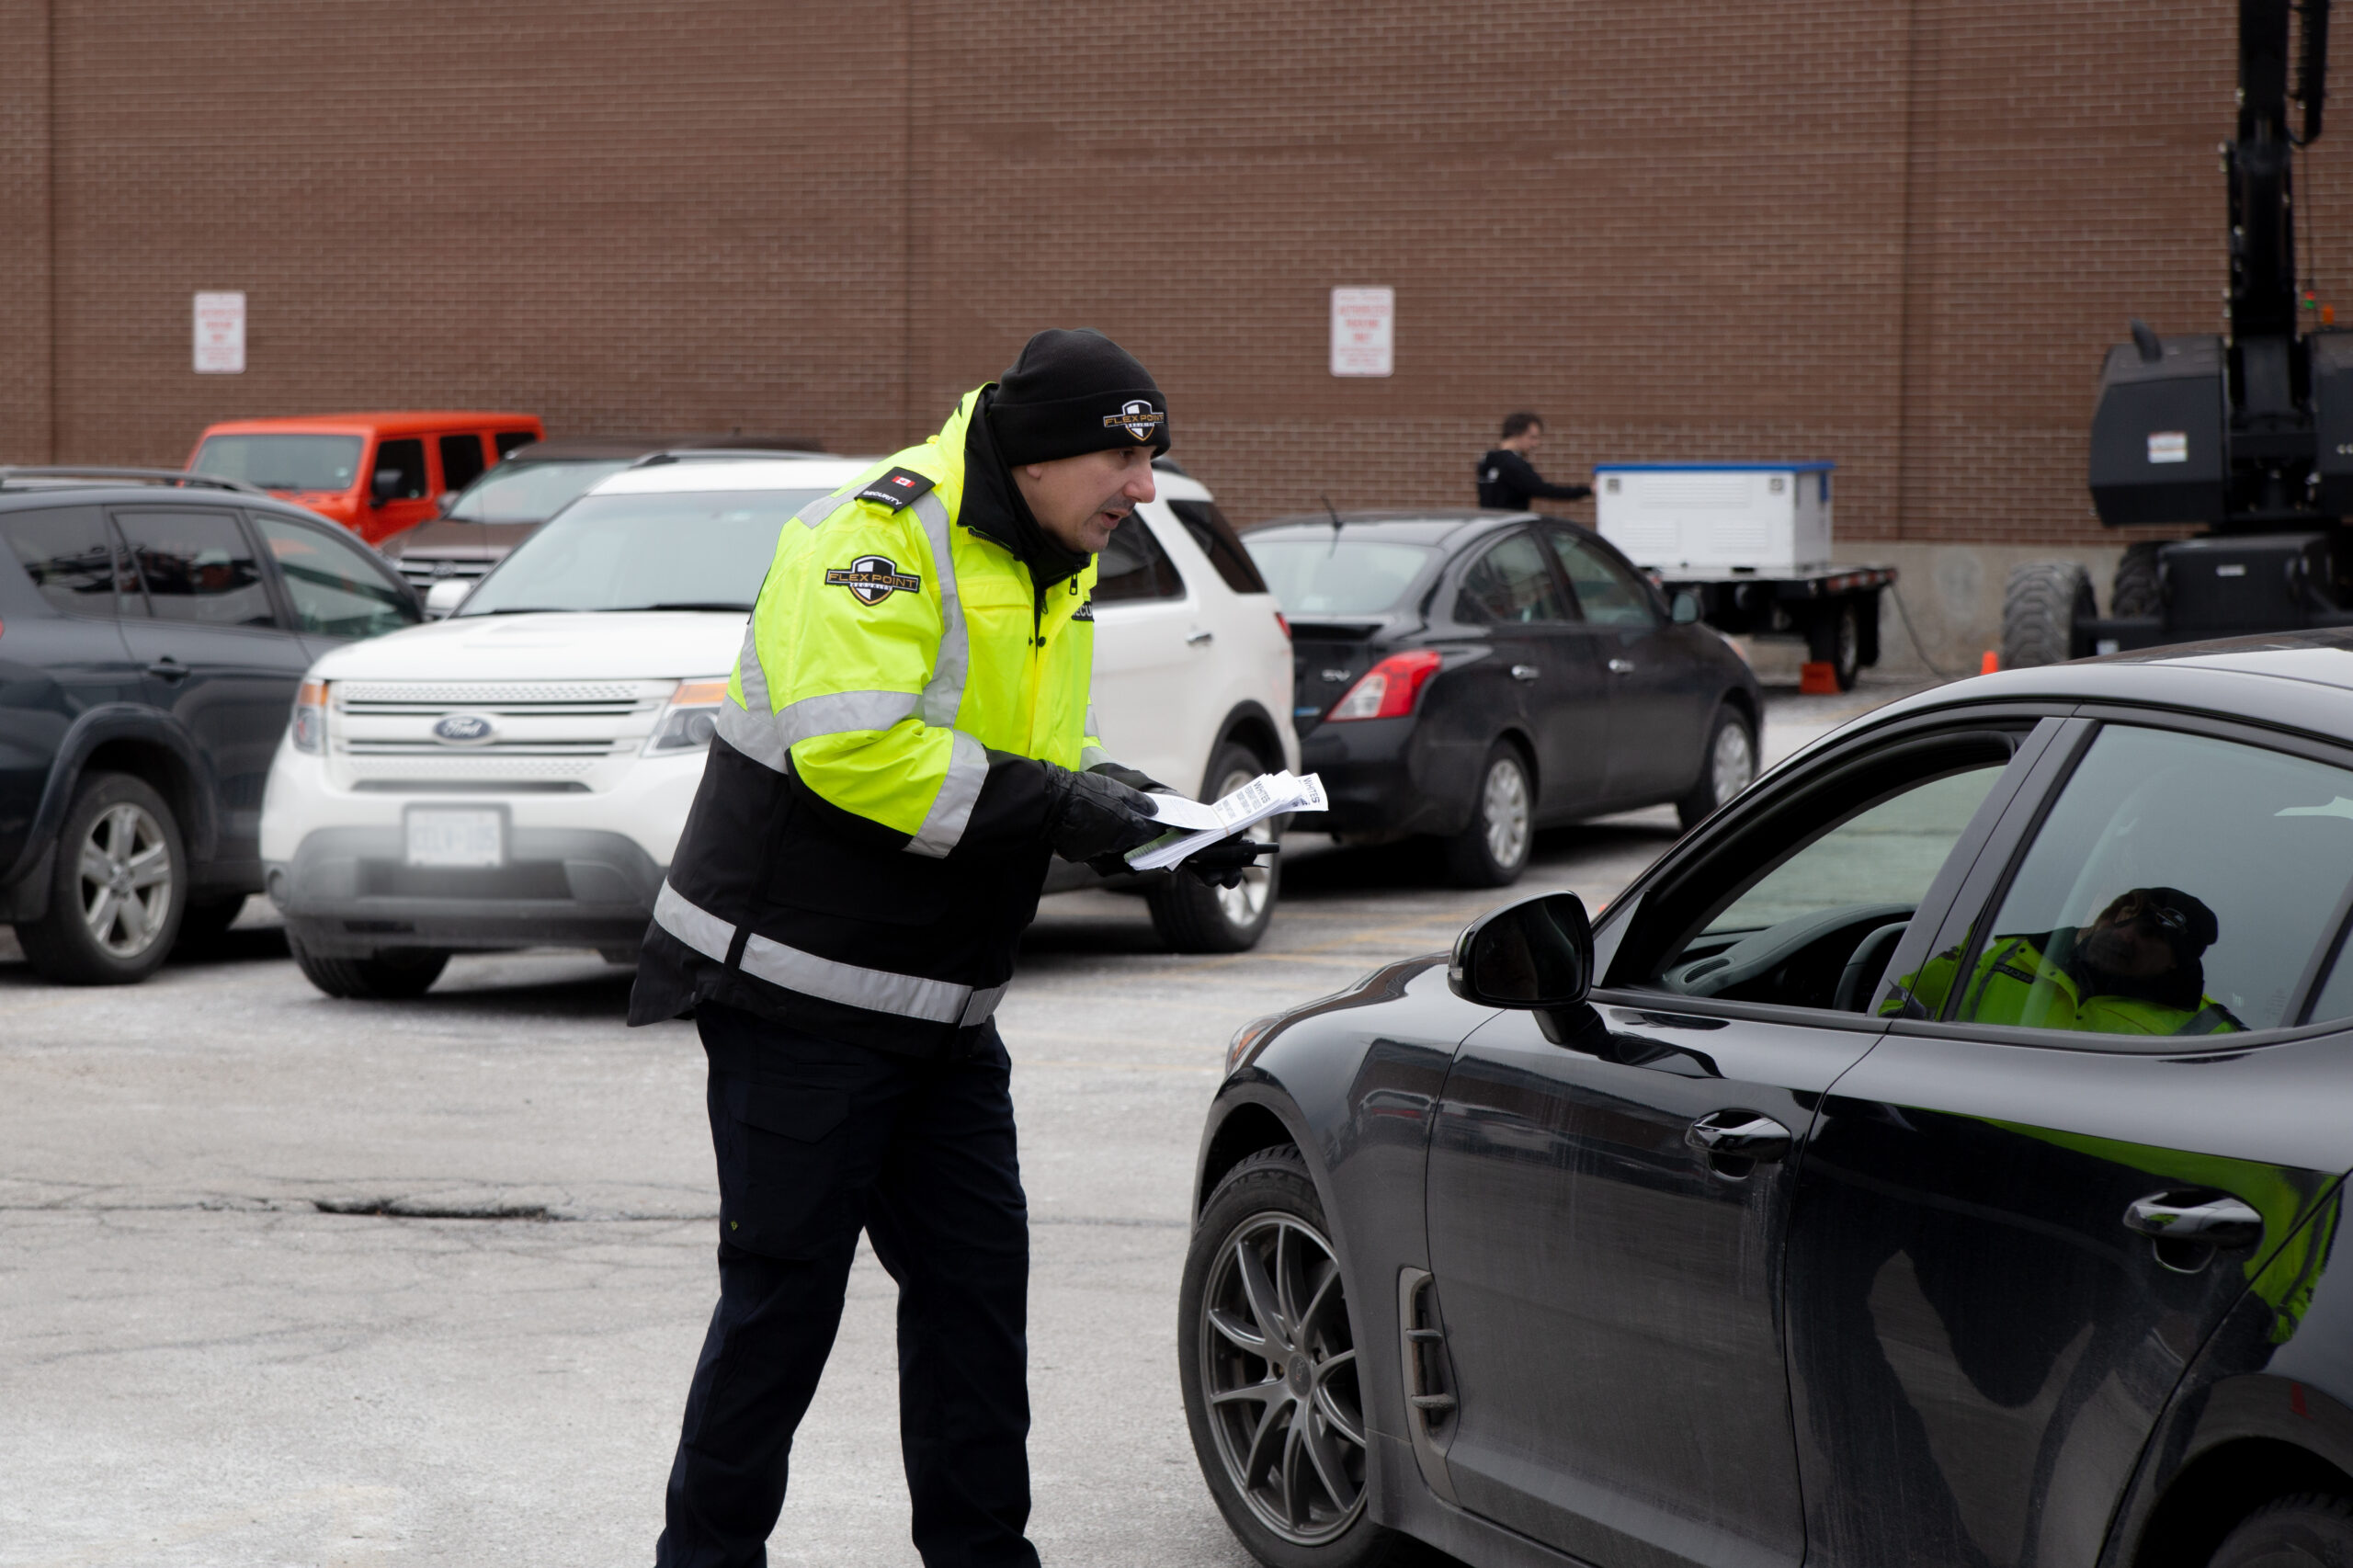 Male Flex Point Security guard providing traffic control services and speaking to a driver in a vehicle